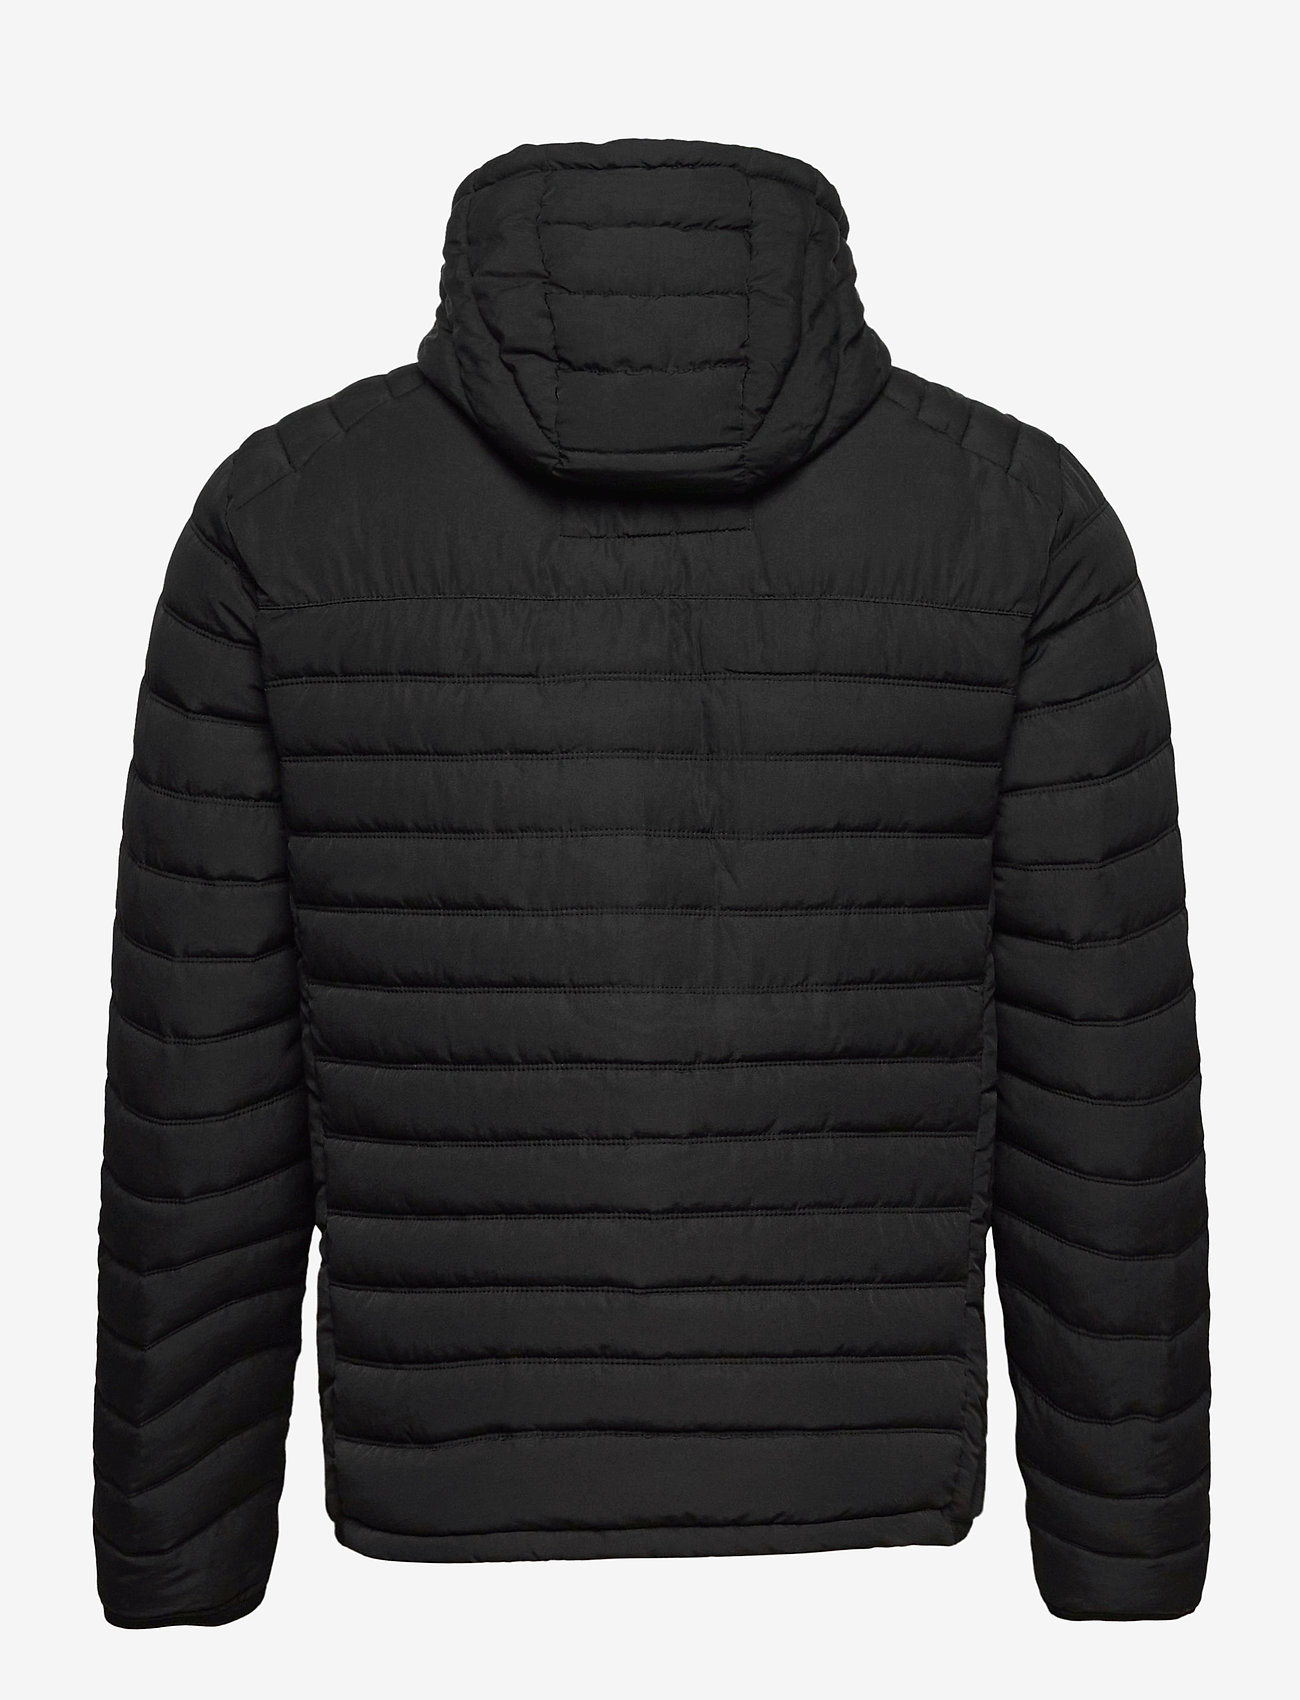 Jack & Jones - JJBASE LIGHT HOOD JACKET - fôrede jakker - black - 1